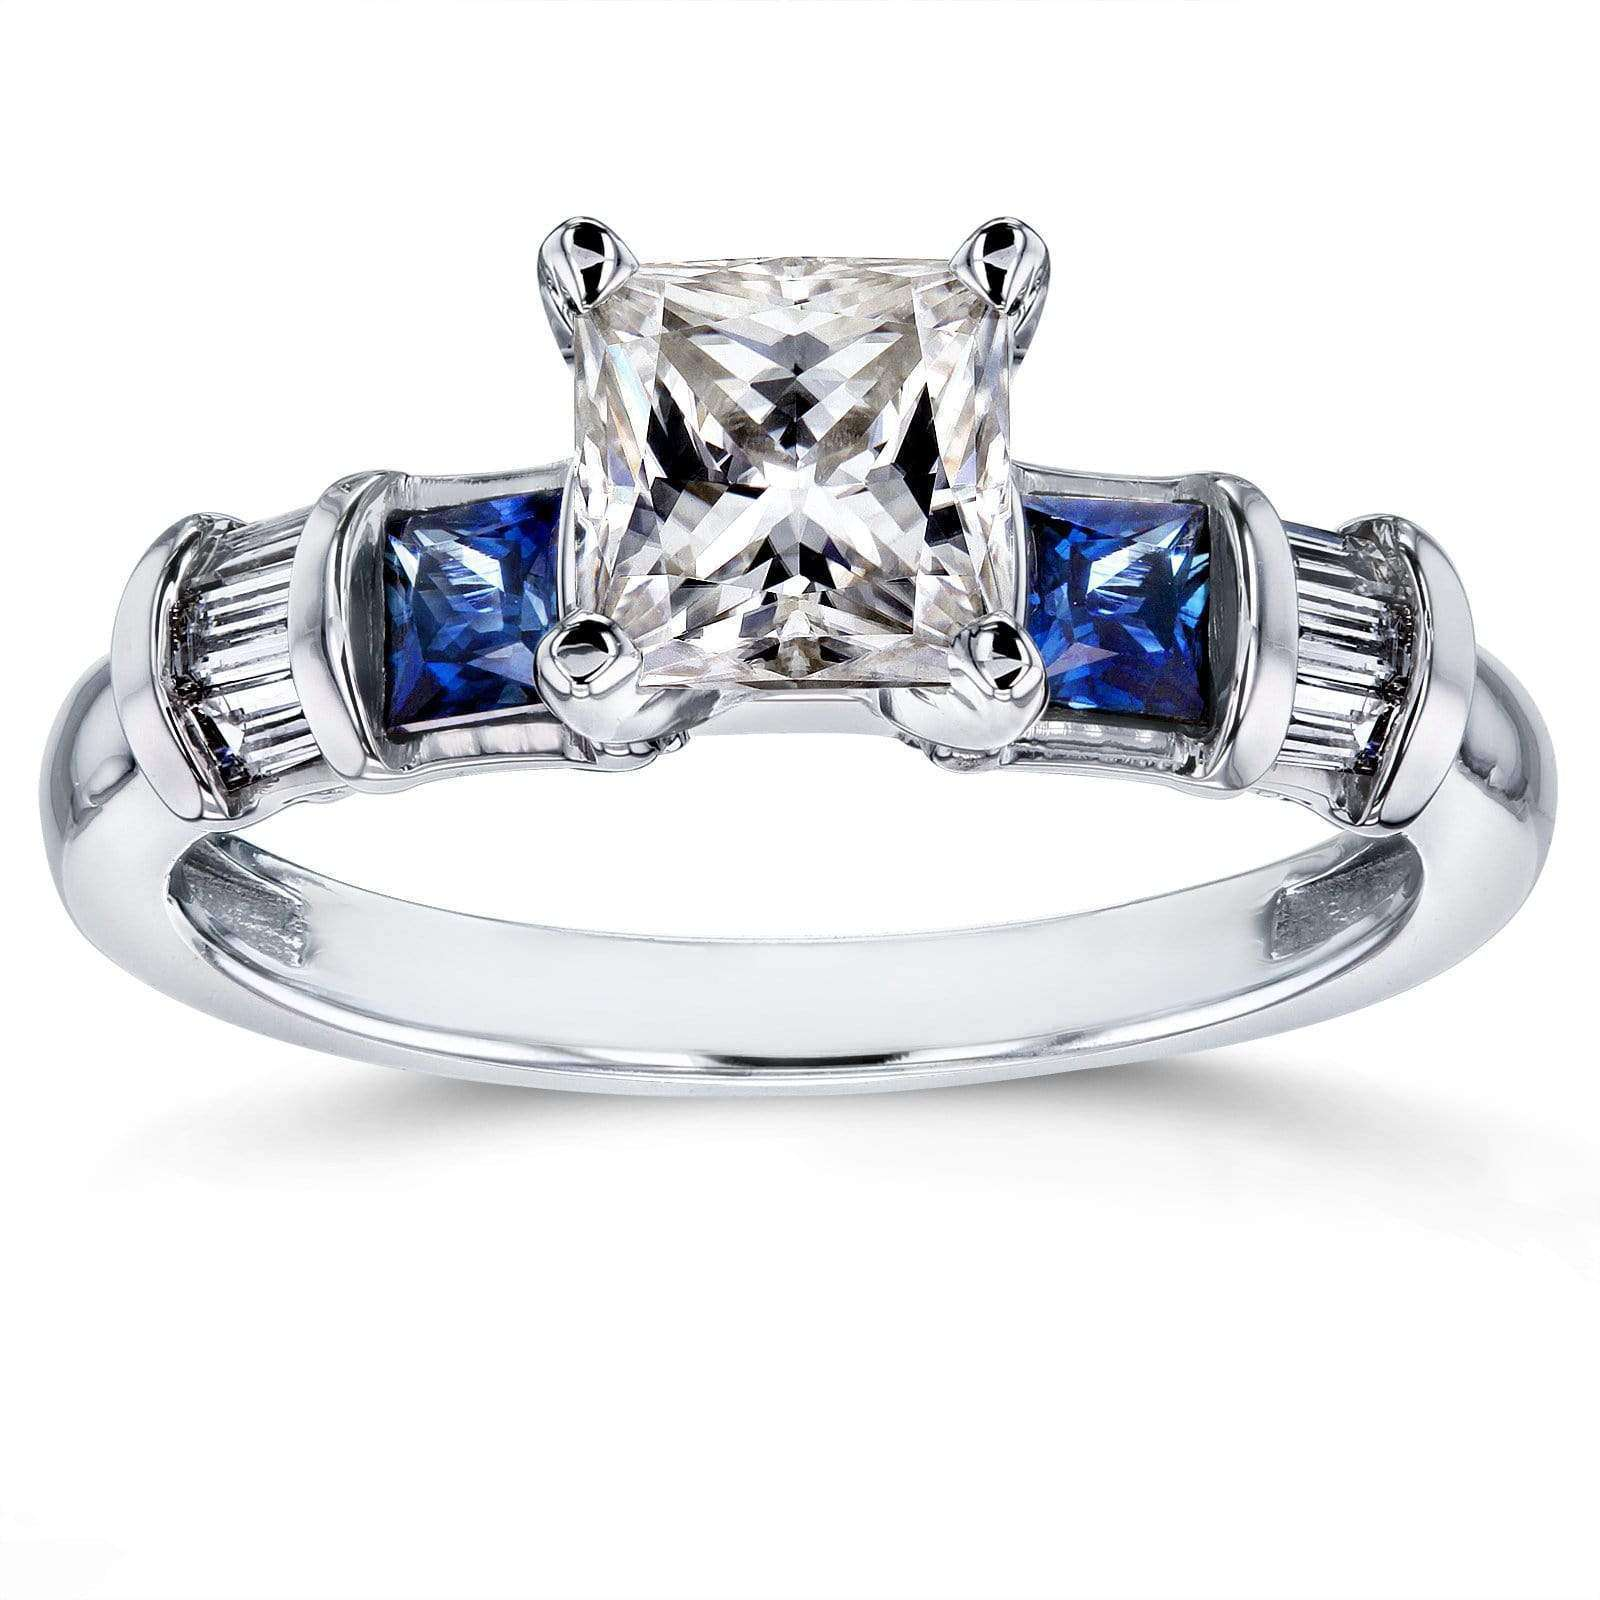 Reviews Princess Moissanite Engagement Ring with Sapphire and Diamond 2 TCW 14k White Gold - 4.5